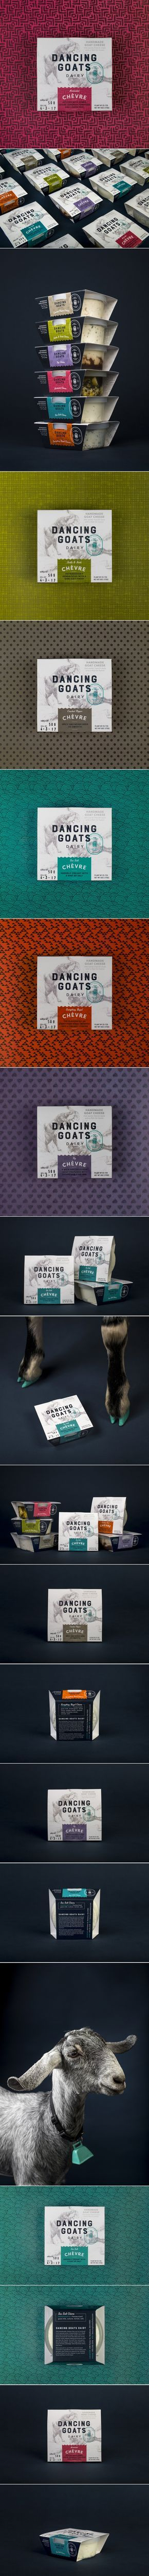 This Goat Cheese Packaging Definitely Stands Out From the Herd — The Dieline | Packaging & Branding Design & Innovation News